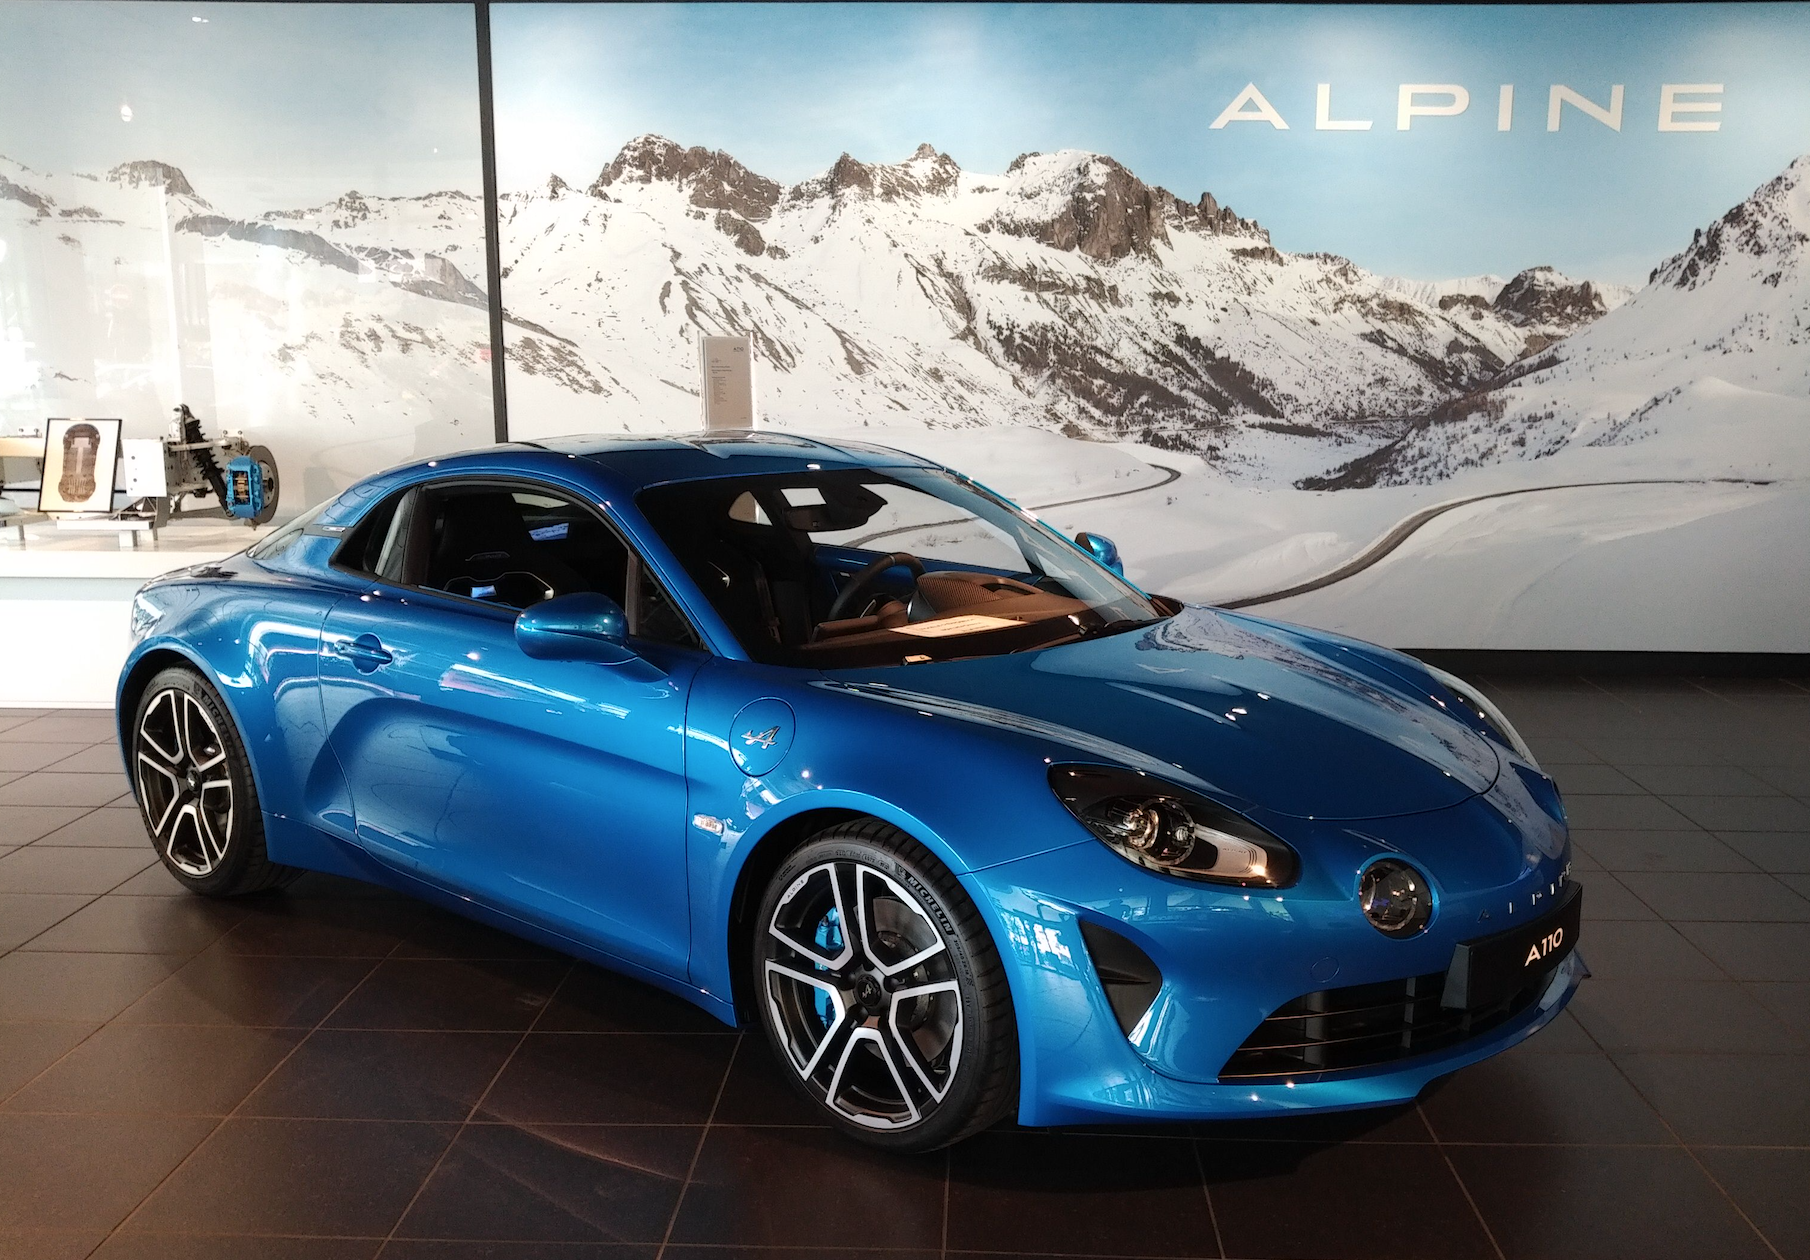 alpine a110 premi re apparition dans le showroom de boulogne billancourt proche paris. Black Bedroom Furniture Sets. Home Design Ideas